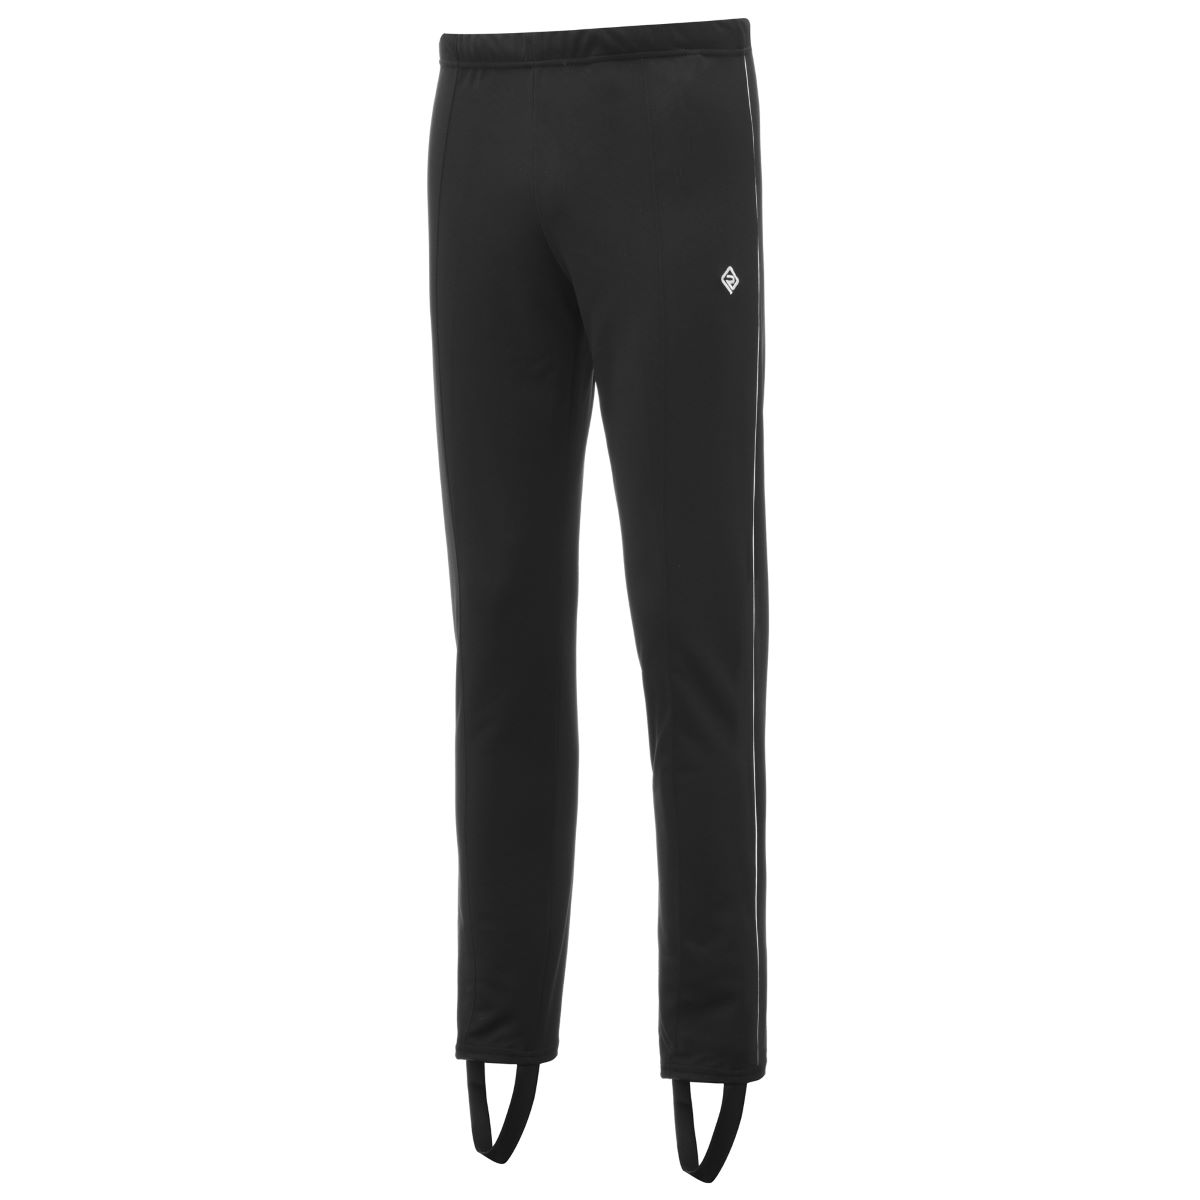 Image of Collant de course Ronhill Classic - M Noir/Blanc | Joggings